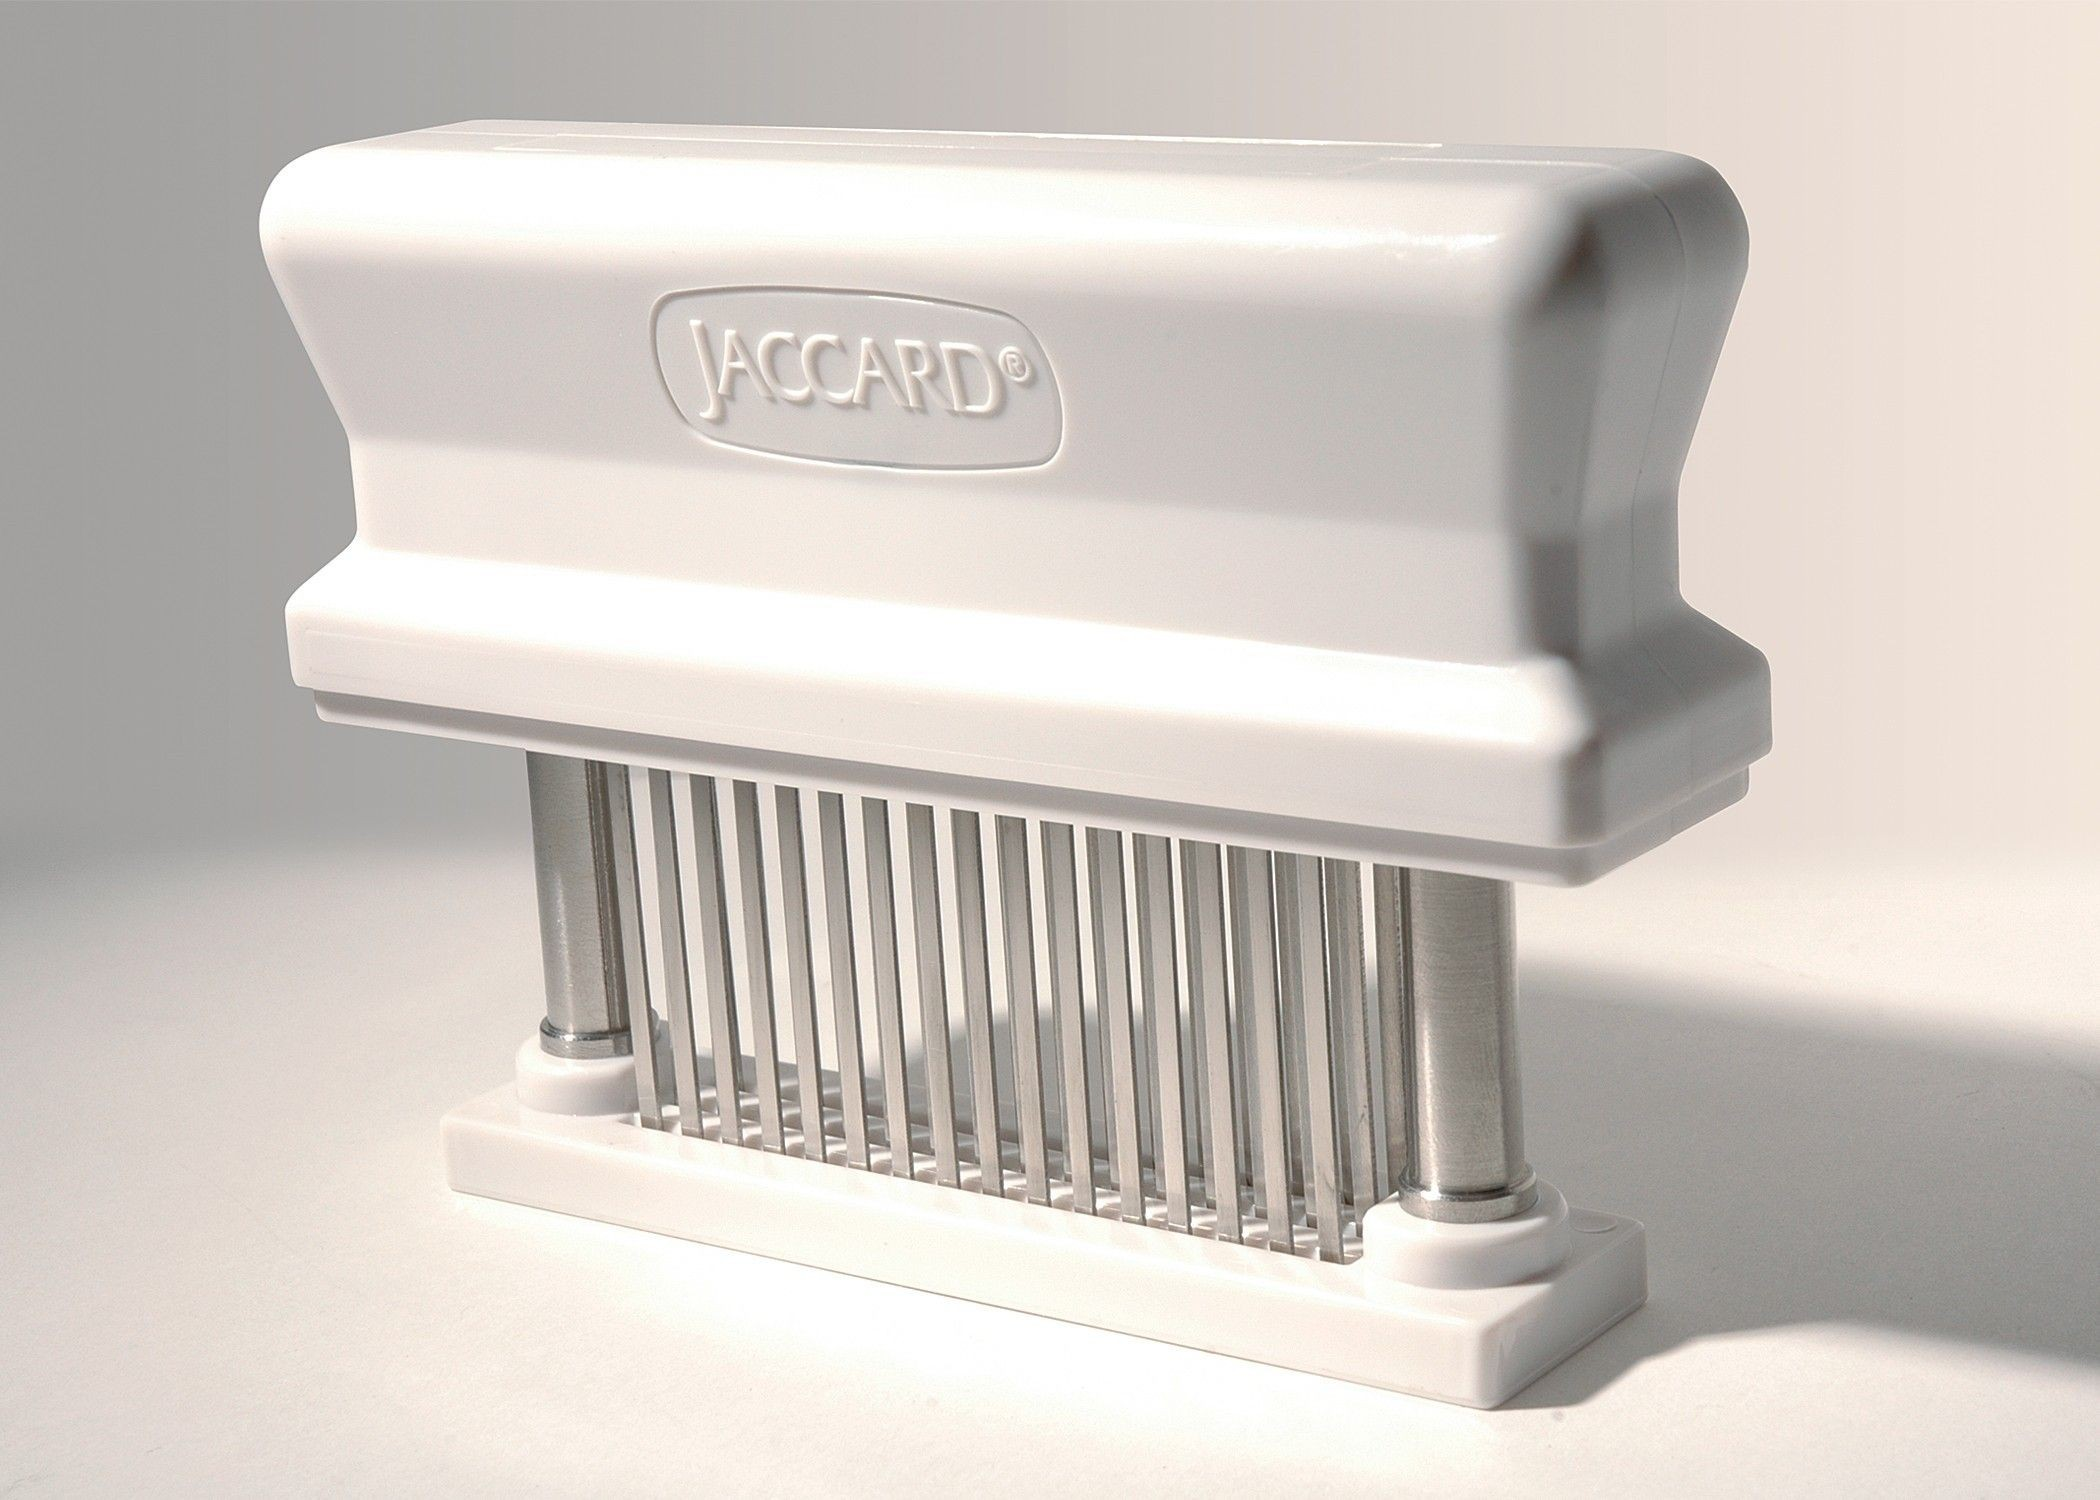 "Johnson-Rose 9200 Jaccard Meat Tenderizer 5-3/4"" x 4-1/2"""